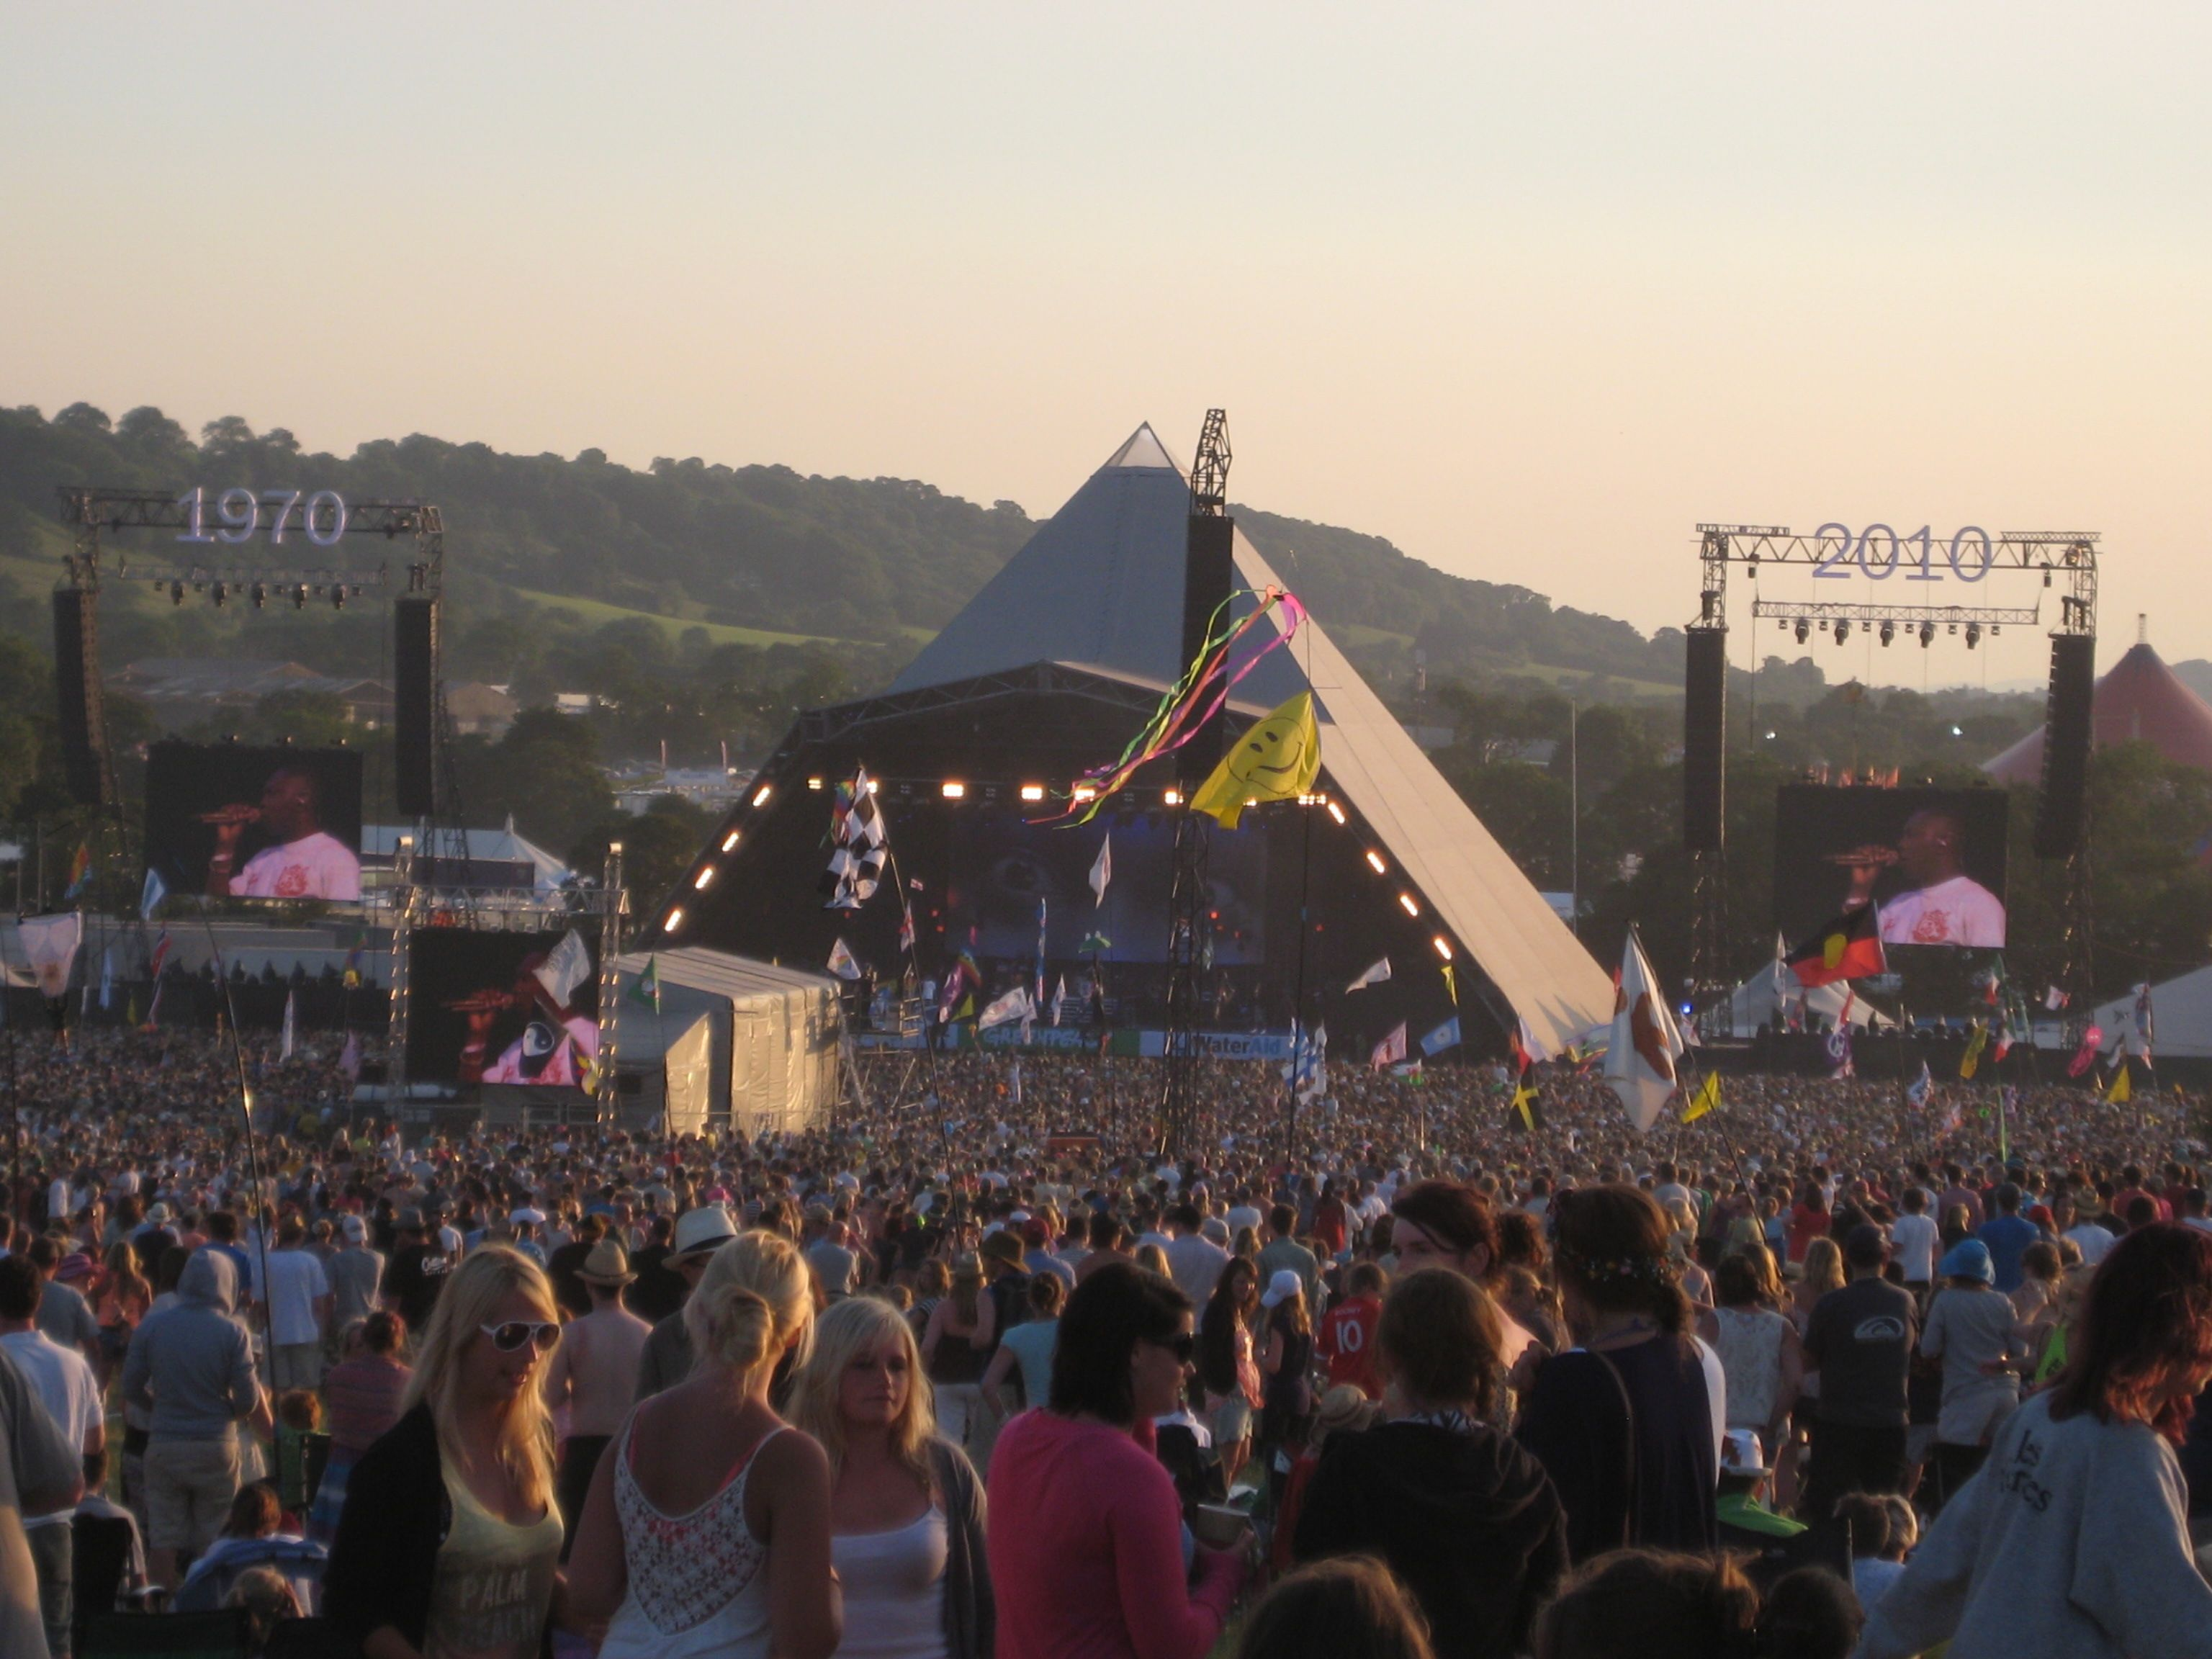 A predominantly dry Glastonbury festival this year, turning very warm or even hot at times, cooler on Sunday